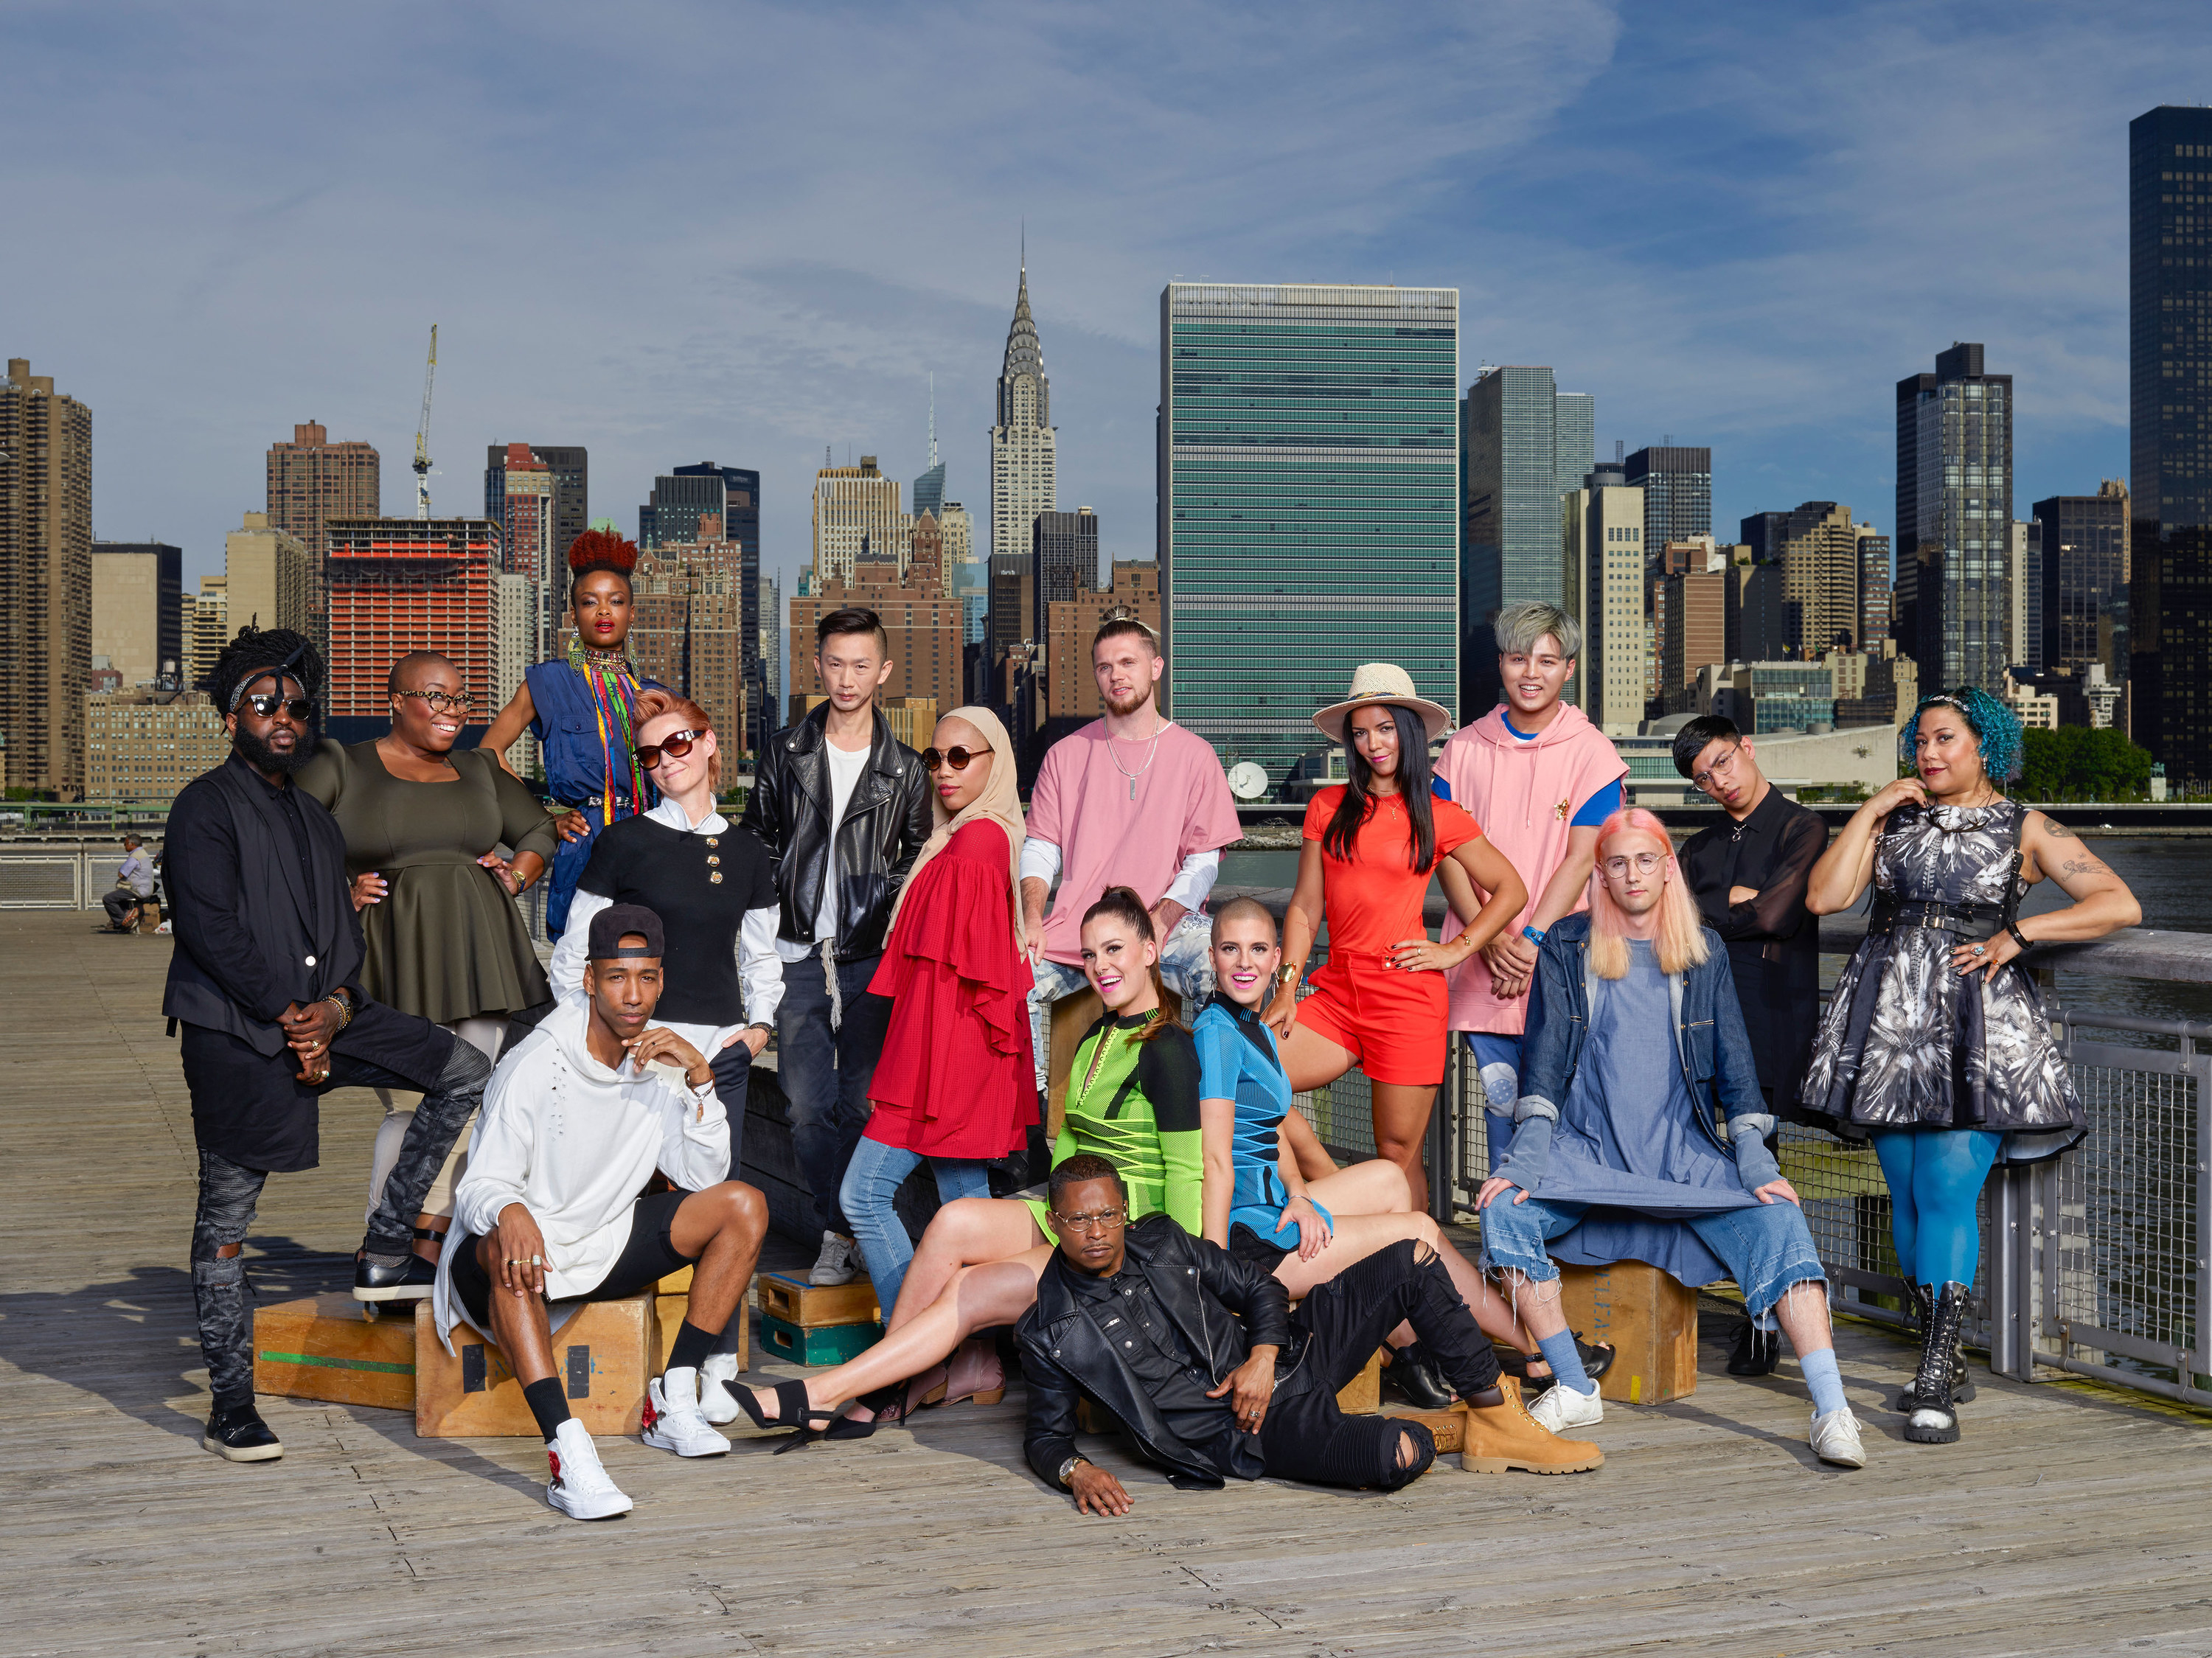 the cast of Season 16 of Project Runway